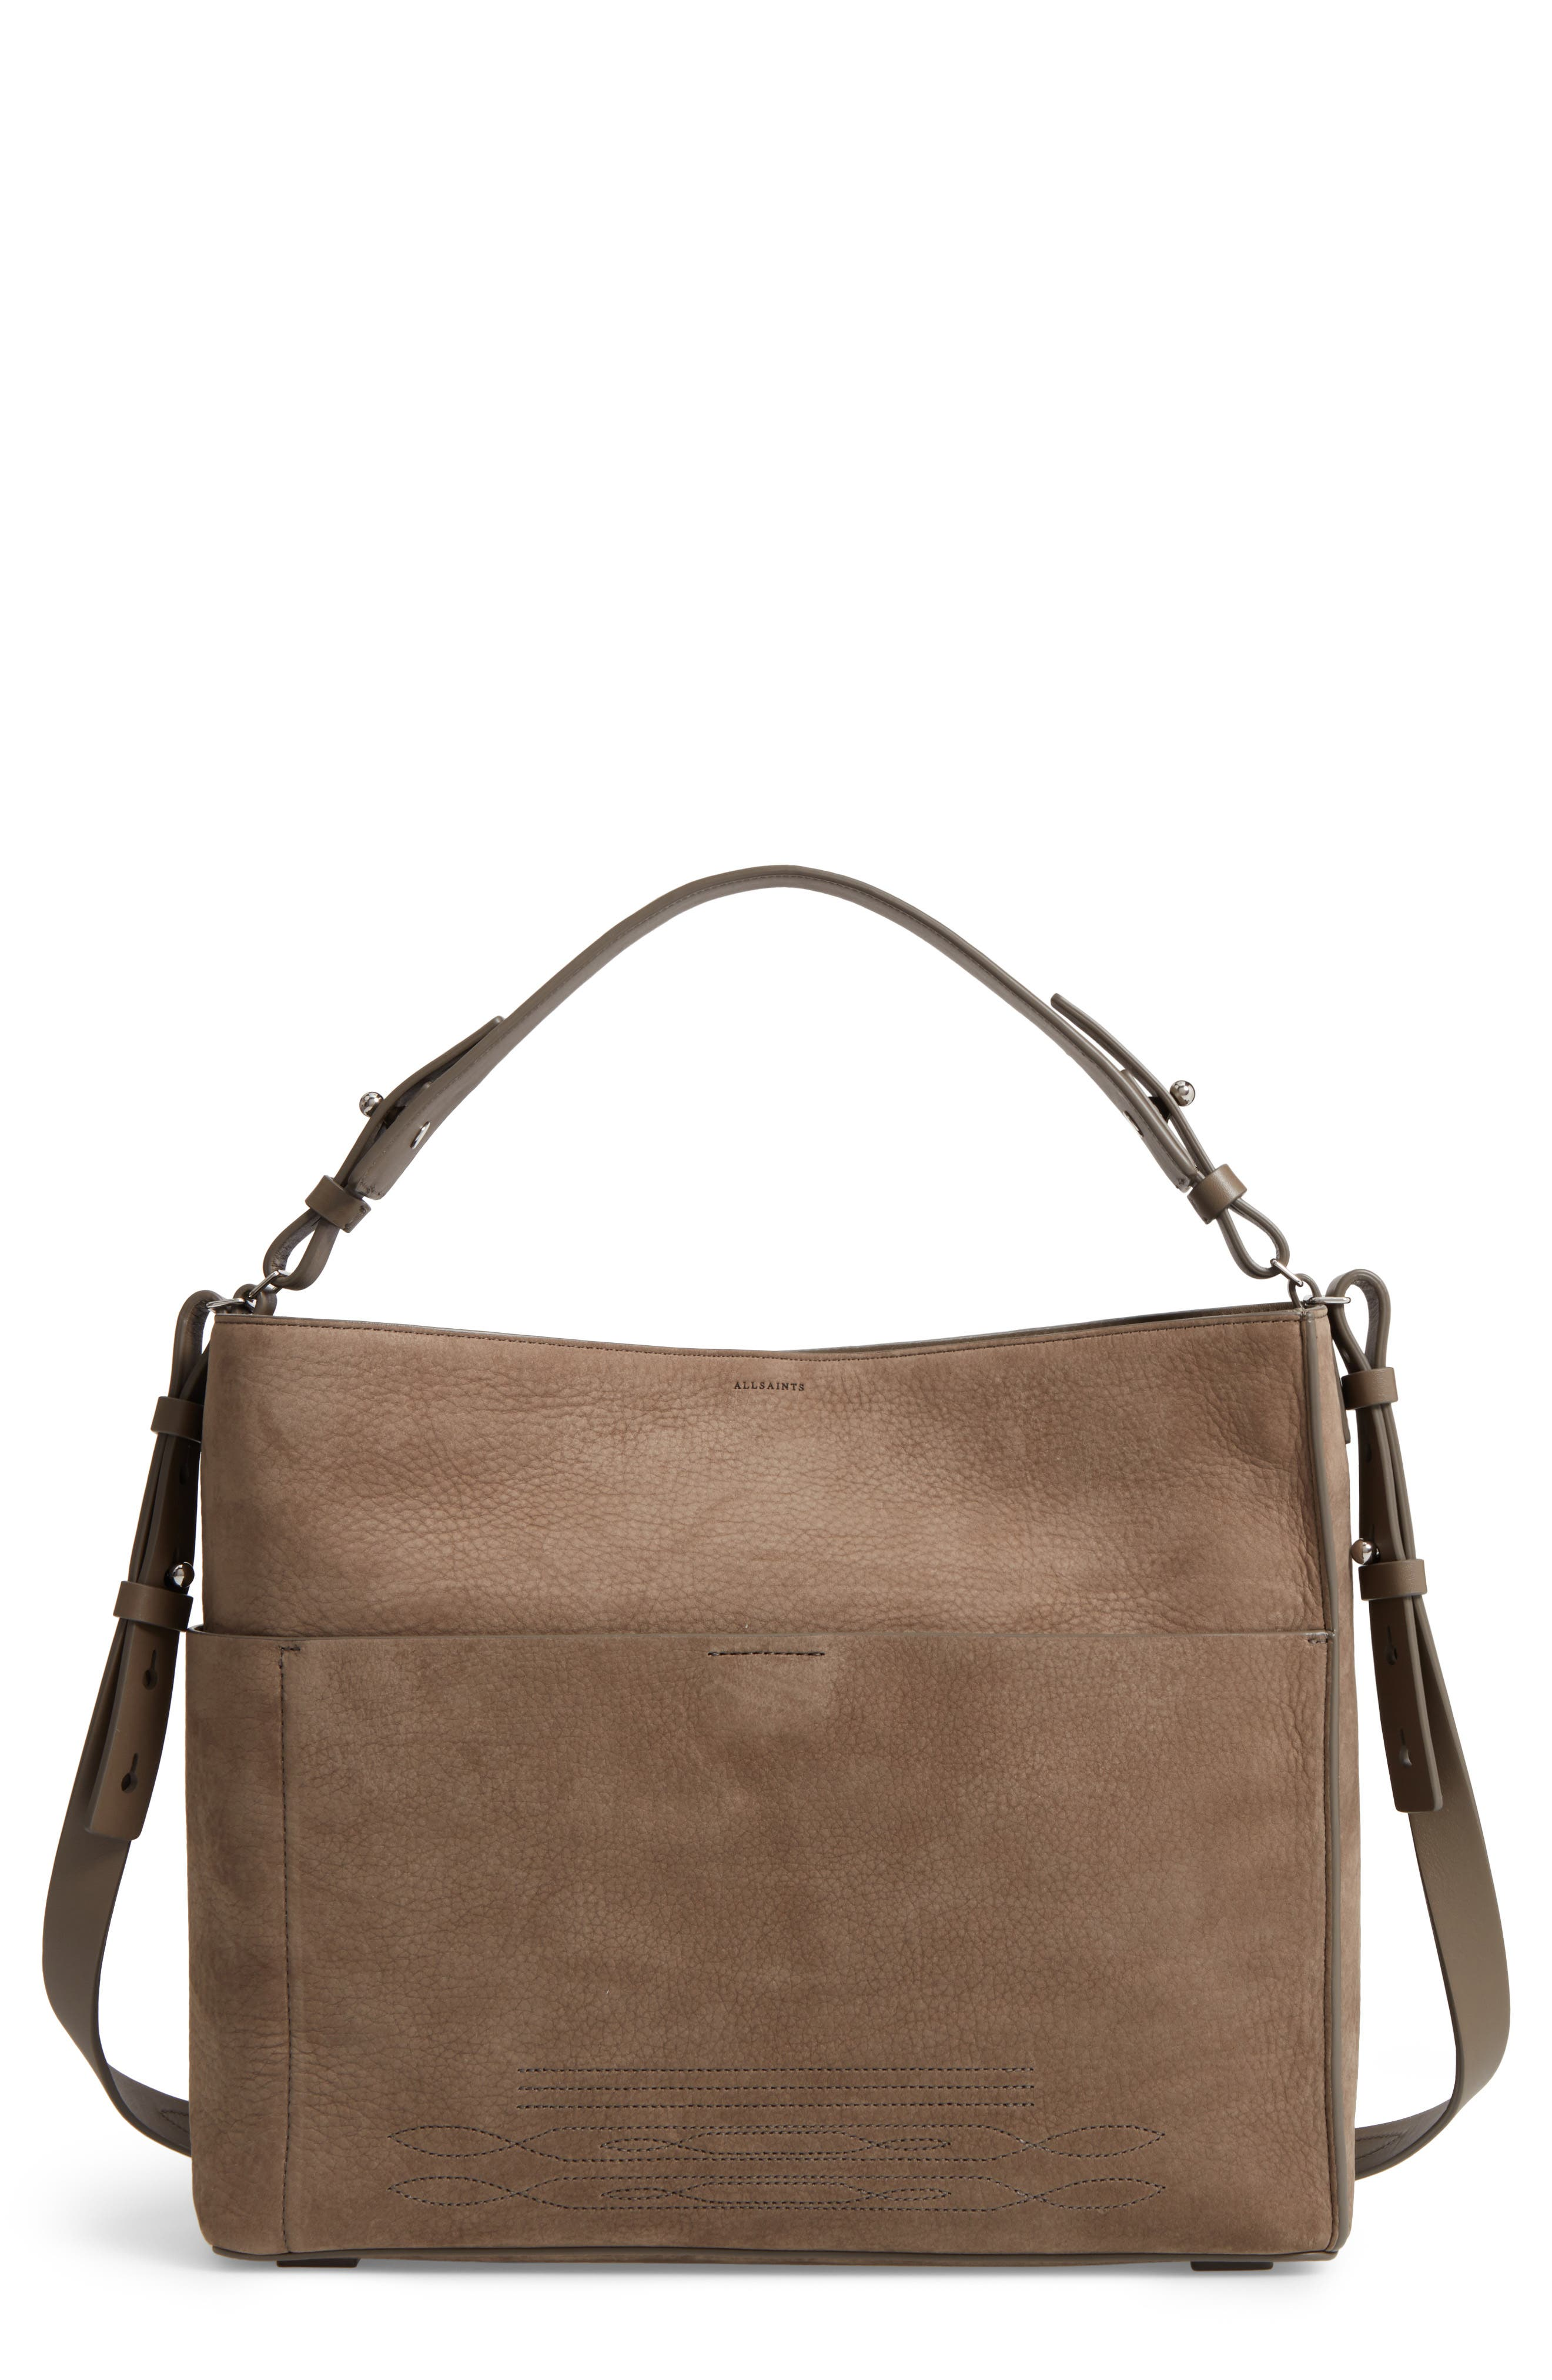 Alternate Image 1 Selected - ALLSAINTS Cooper Nubuck Calfskin Leather Tote